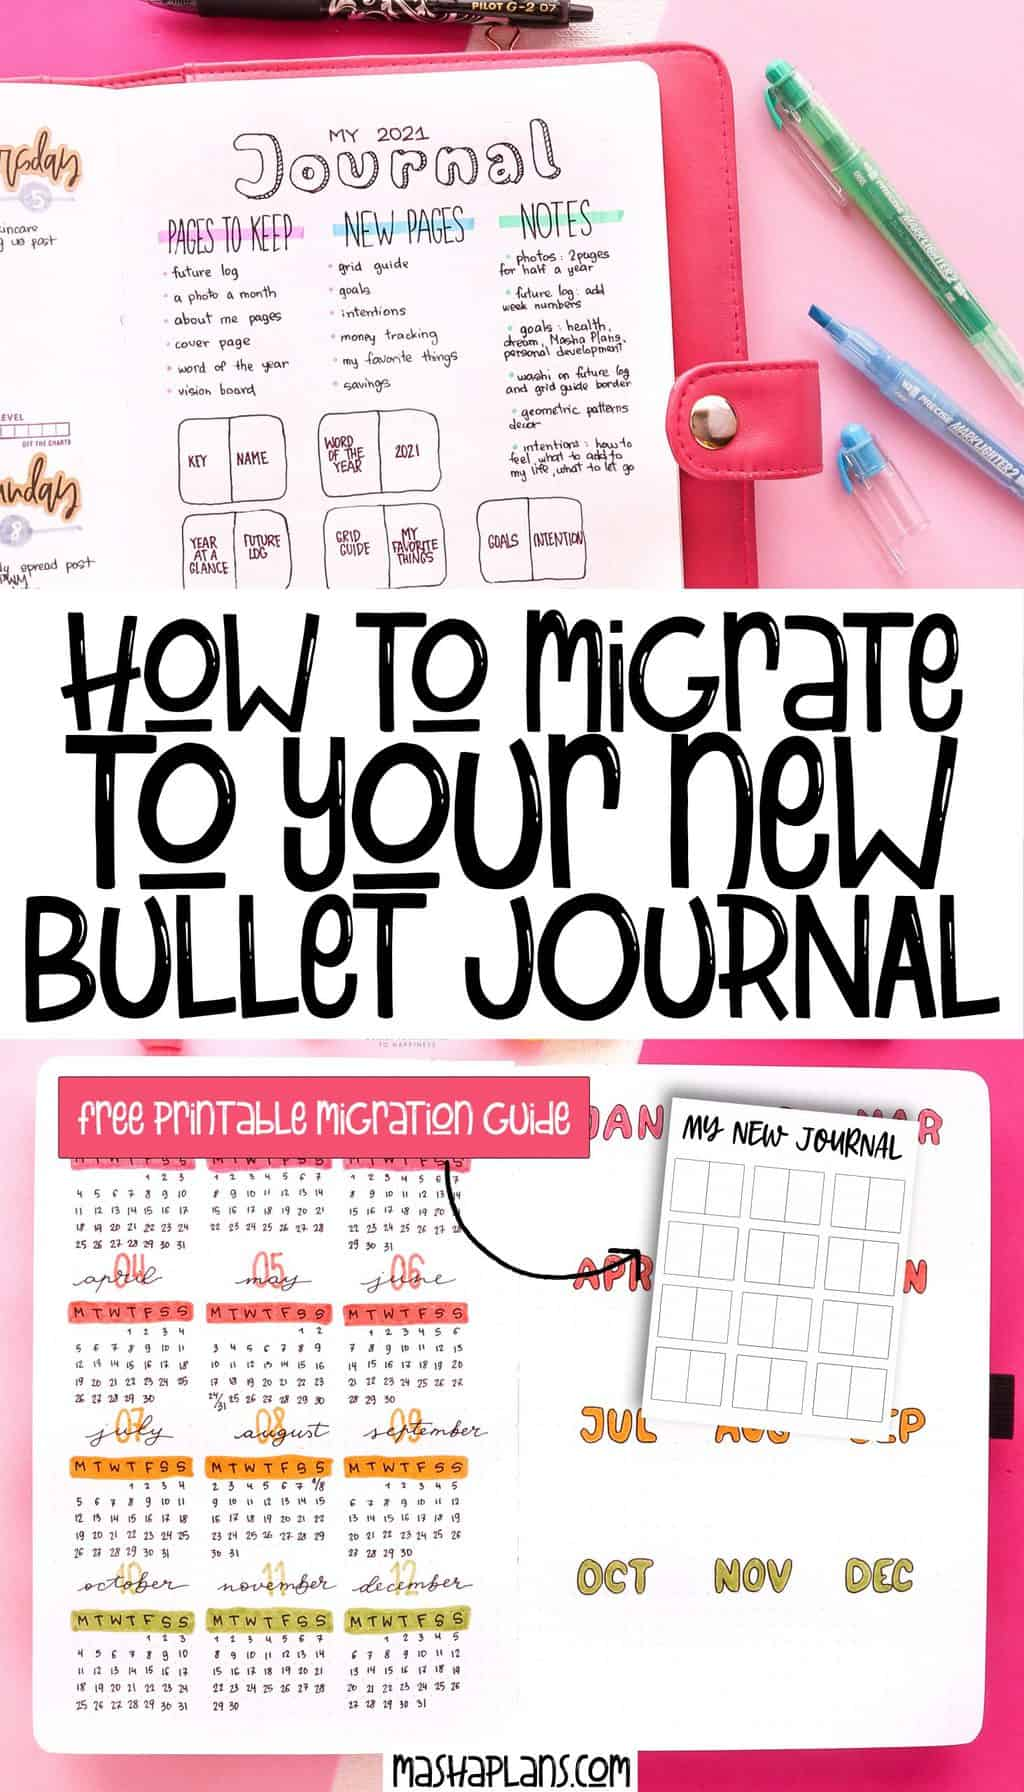 How To Migrate To Your New Bullet Journal | Masha Plans